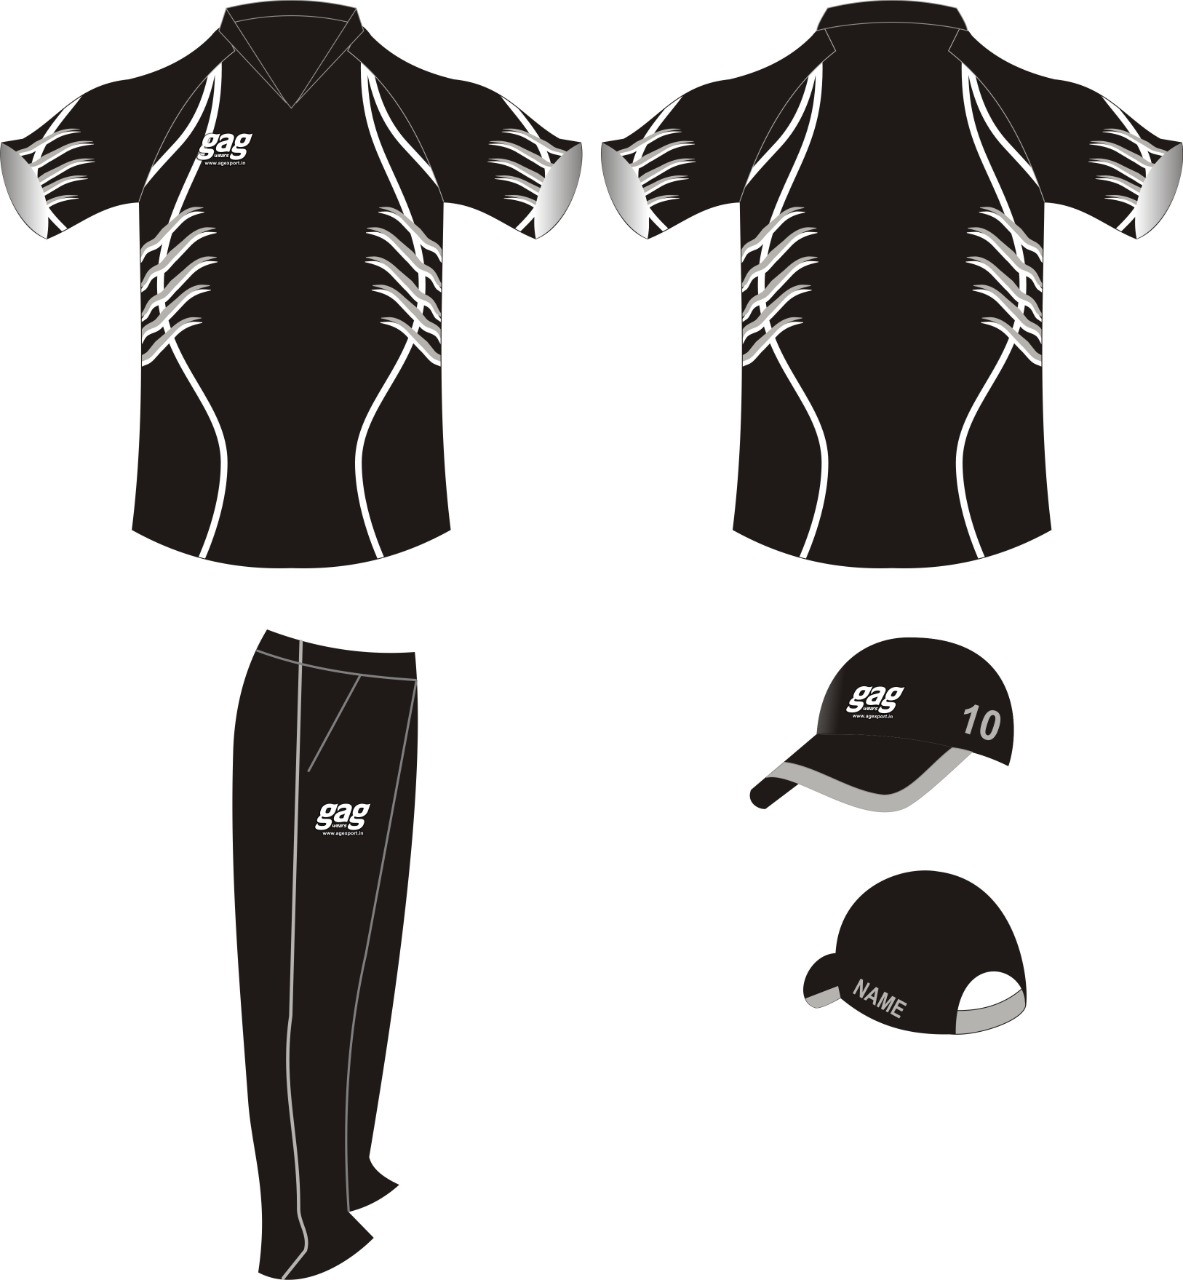 Custom Cricket Jerseys Manufacturers in Jalandhar in Bangladesh